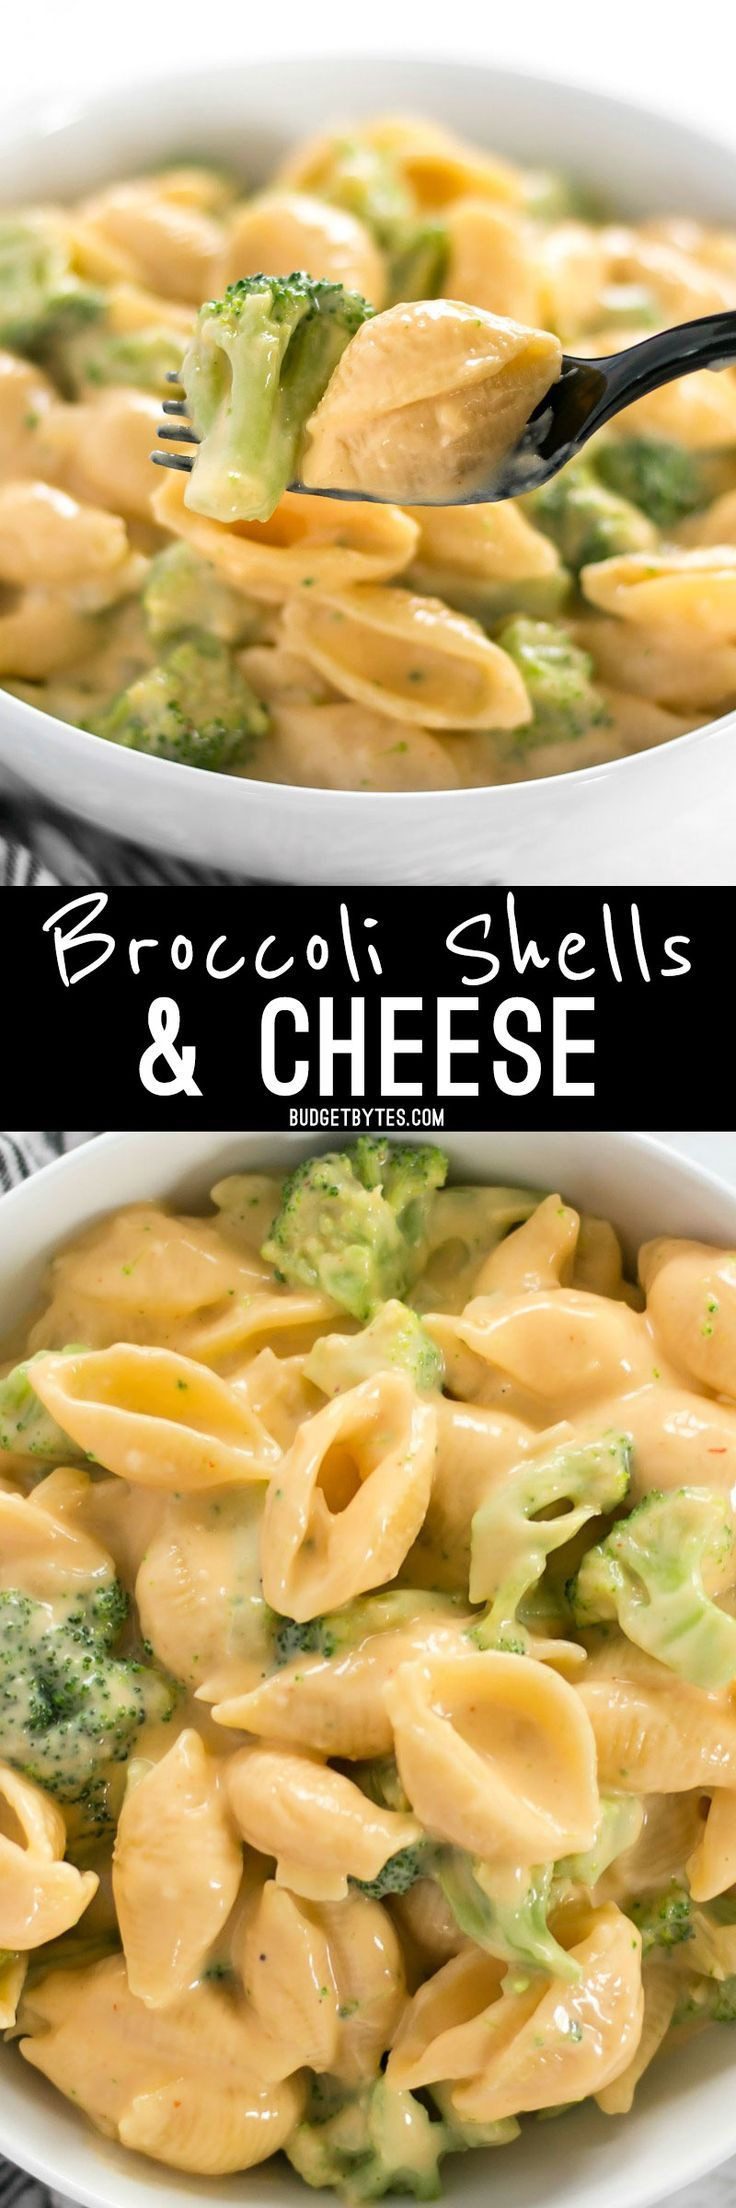 Broccoli shells n' cheese is a classic American dish that goes well alongside any meal, or as a hearty side dish. 100% real, 100% homemade. @Budget Bytes | Delicious Recipes for Small Budgets